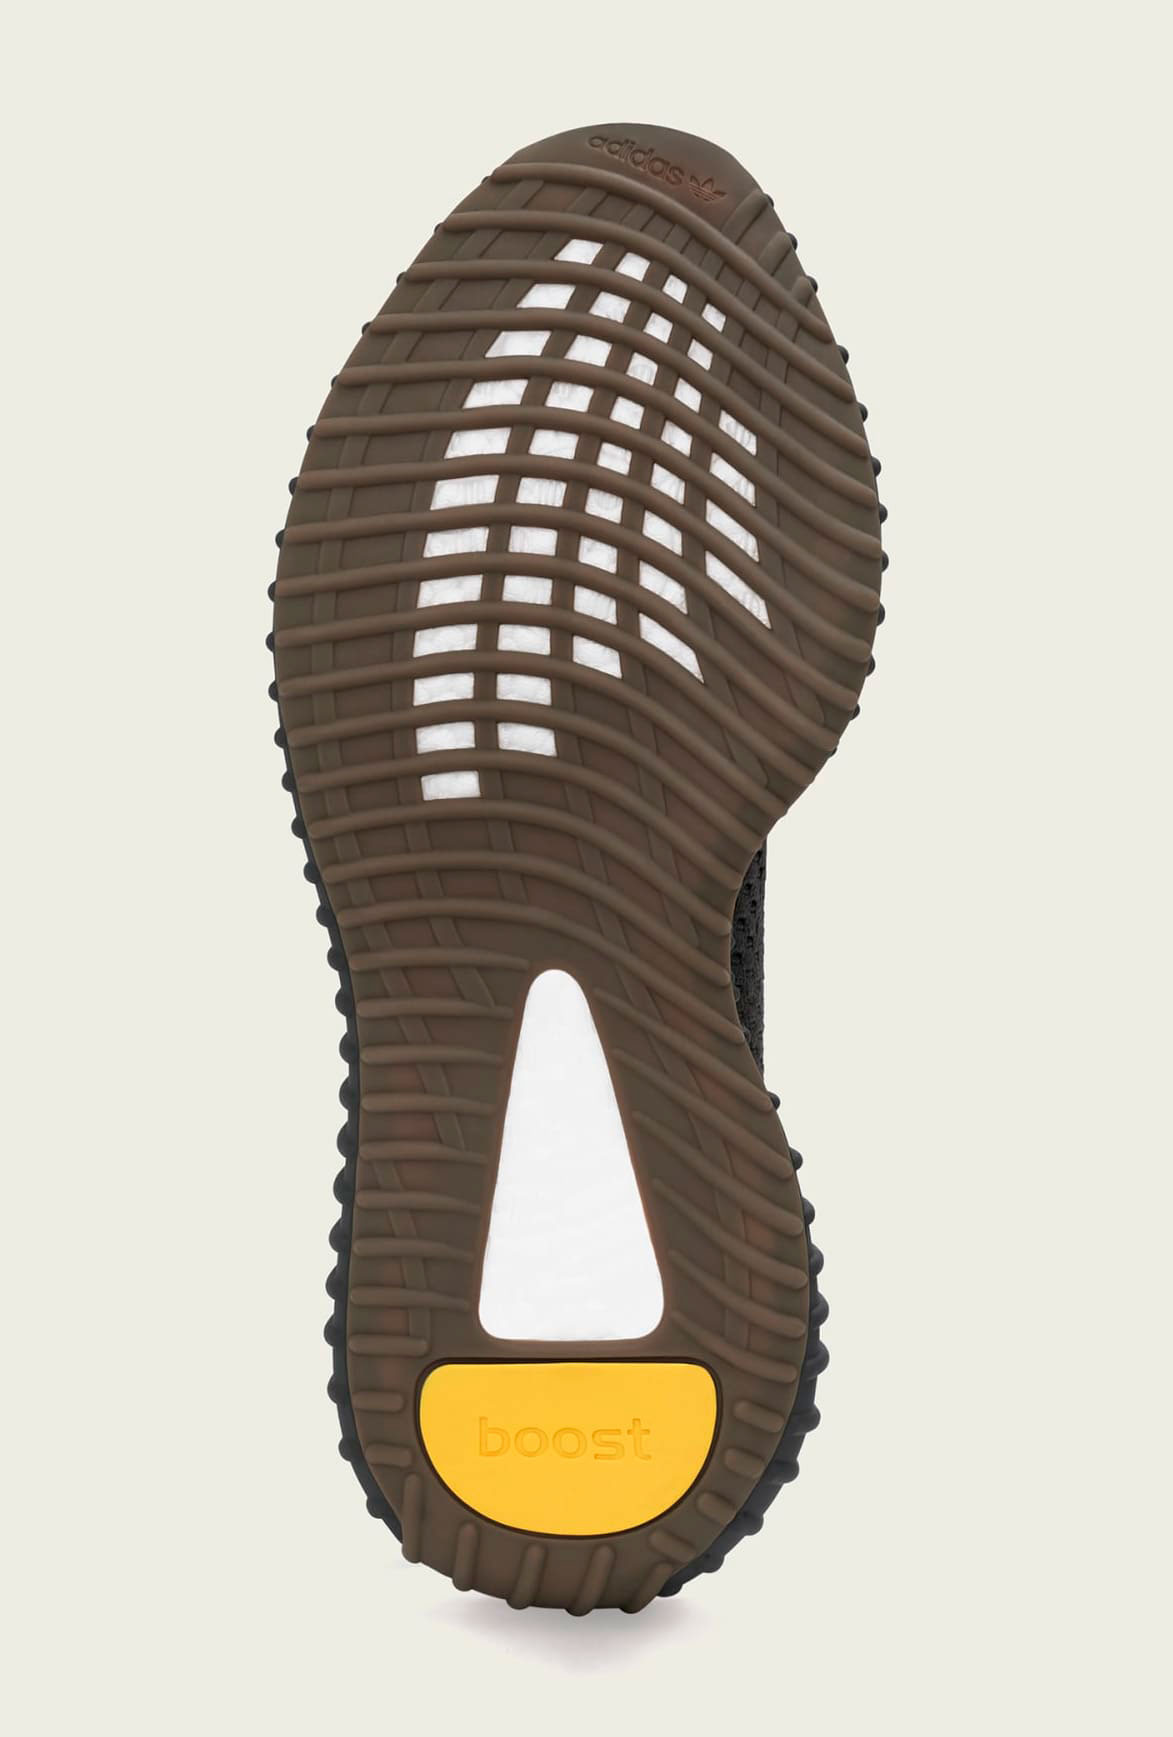 yeezy-boost-350-v2-cinder-release-date-price-5